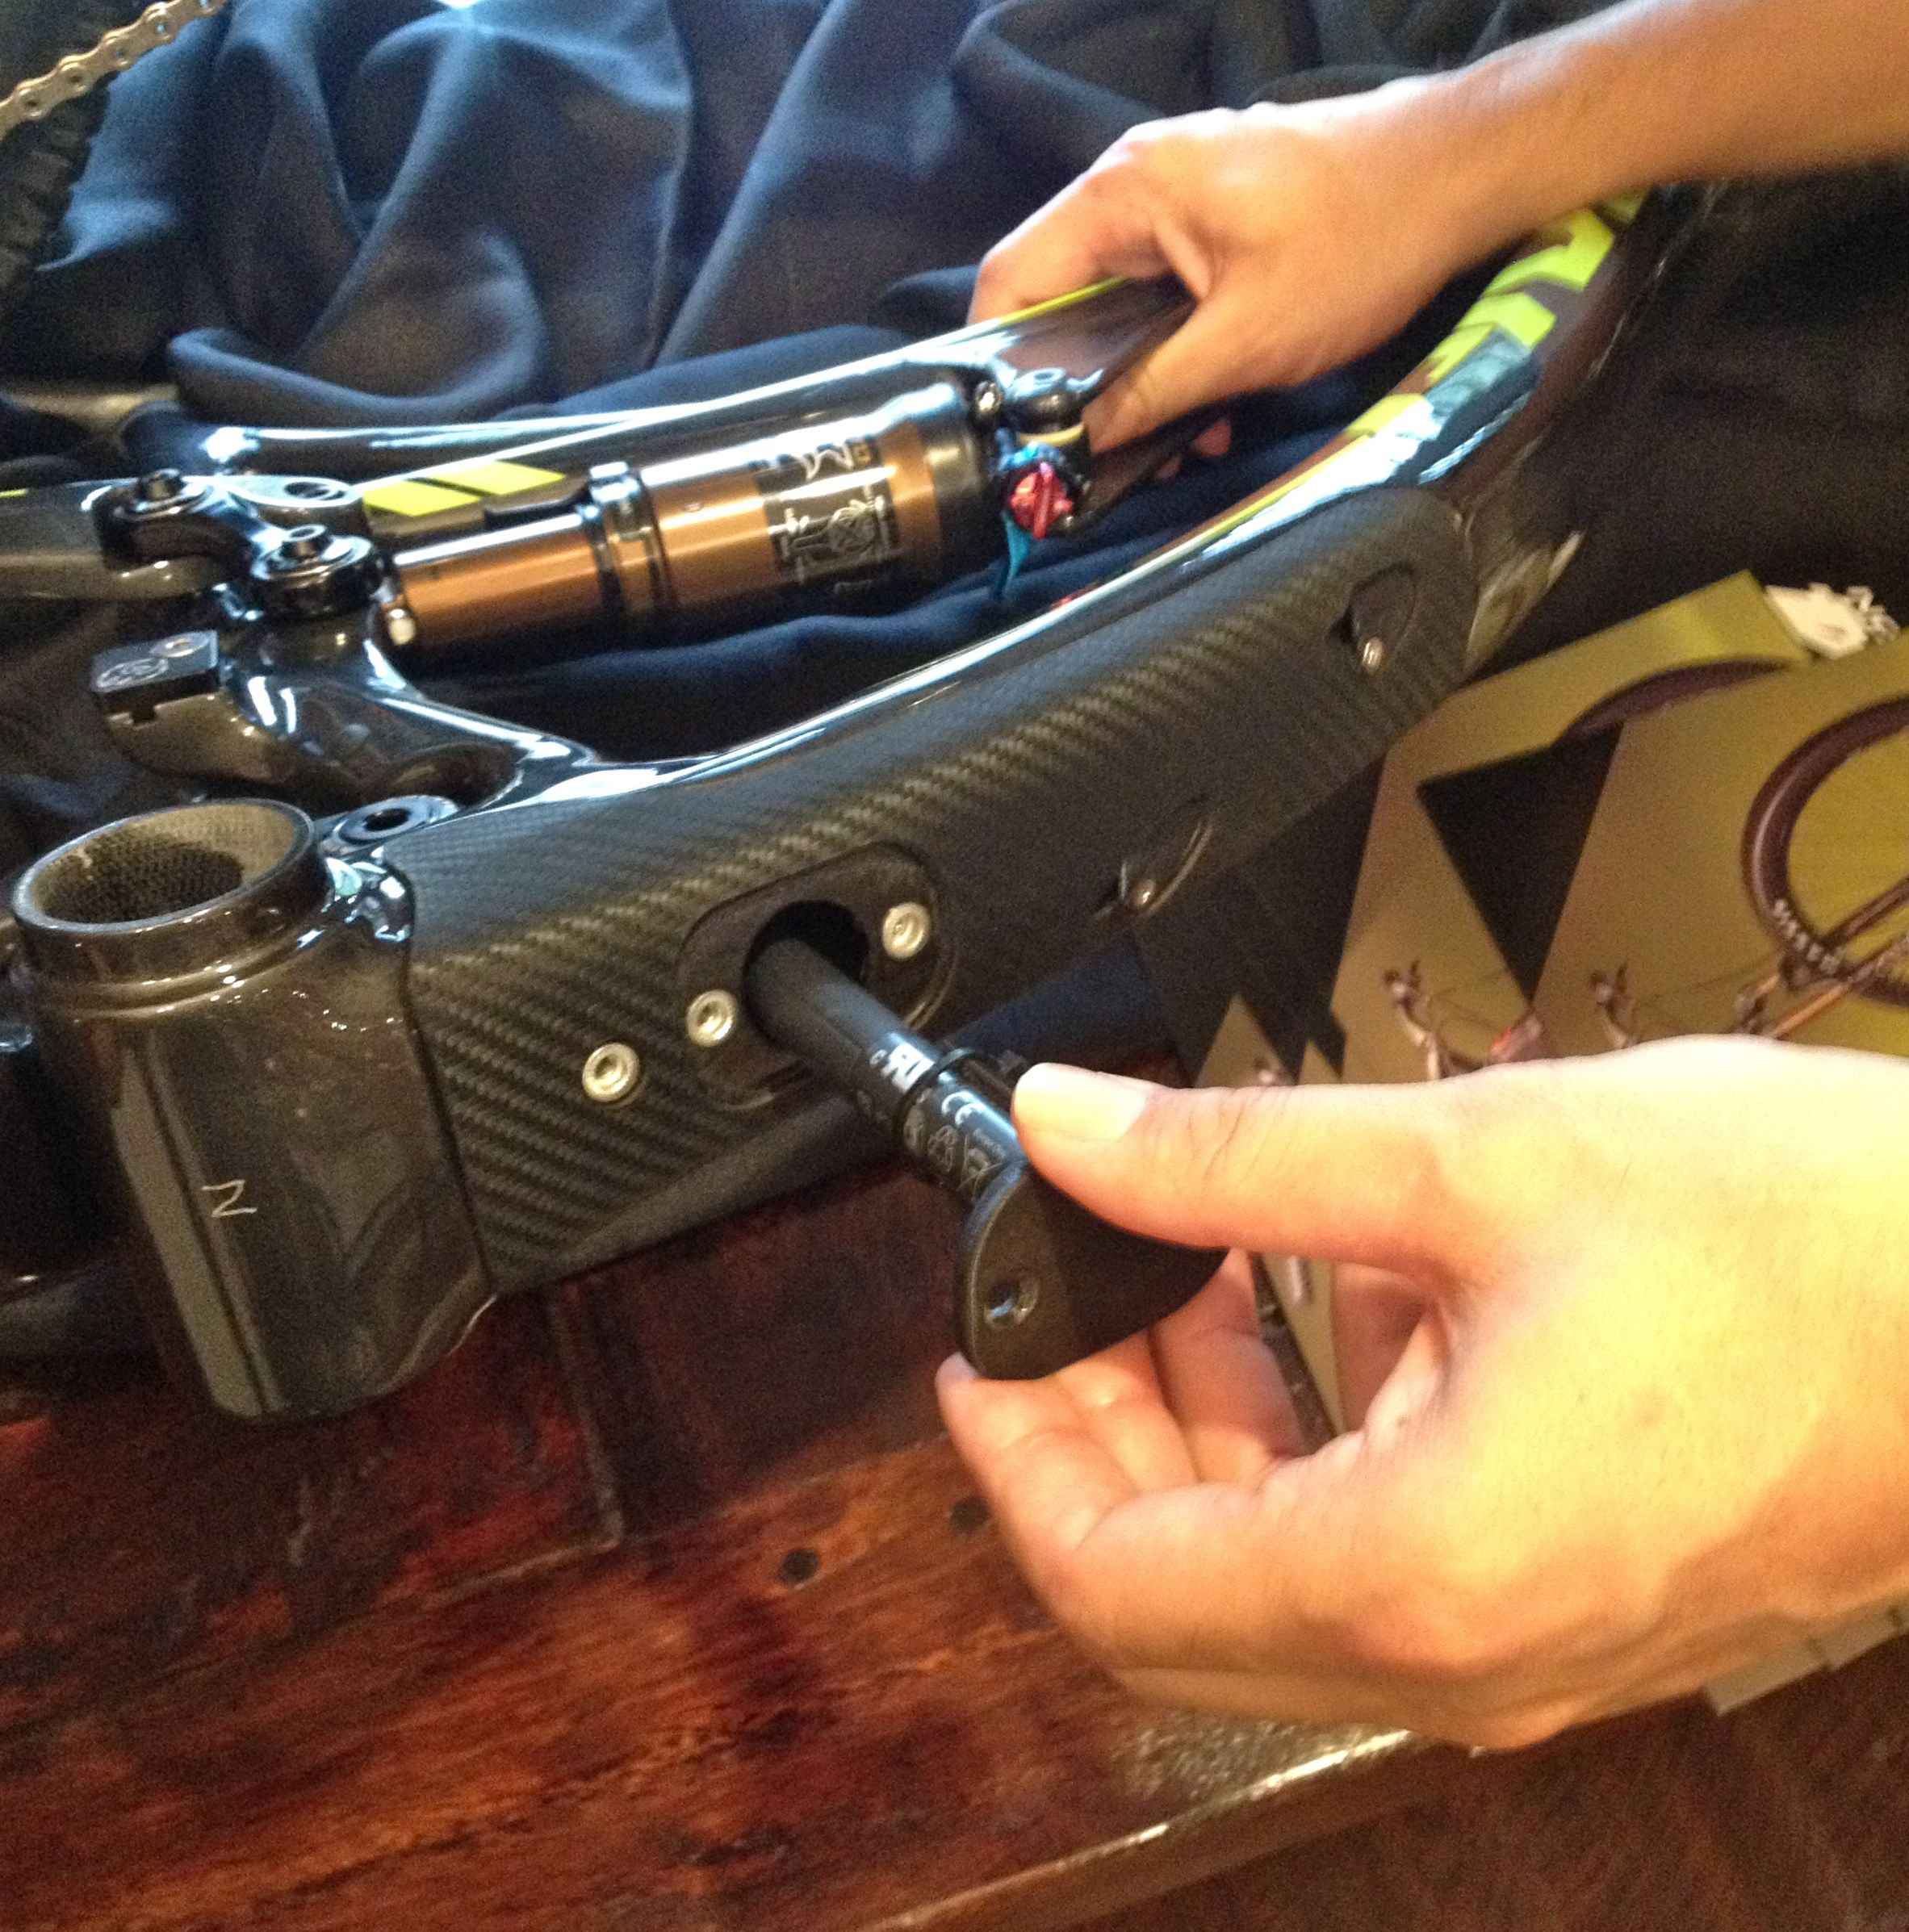 Pivot's Chris Cocalis demonstrates how to stow the Di2 battery inside the Mach 4's via the frame's downtube port.